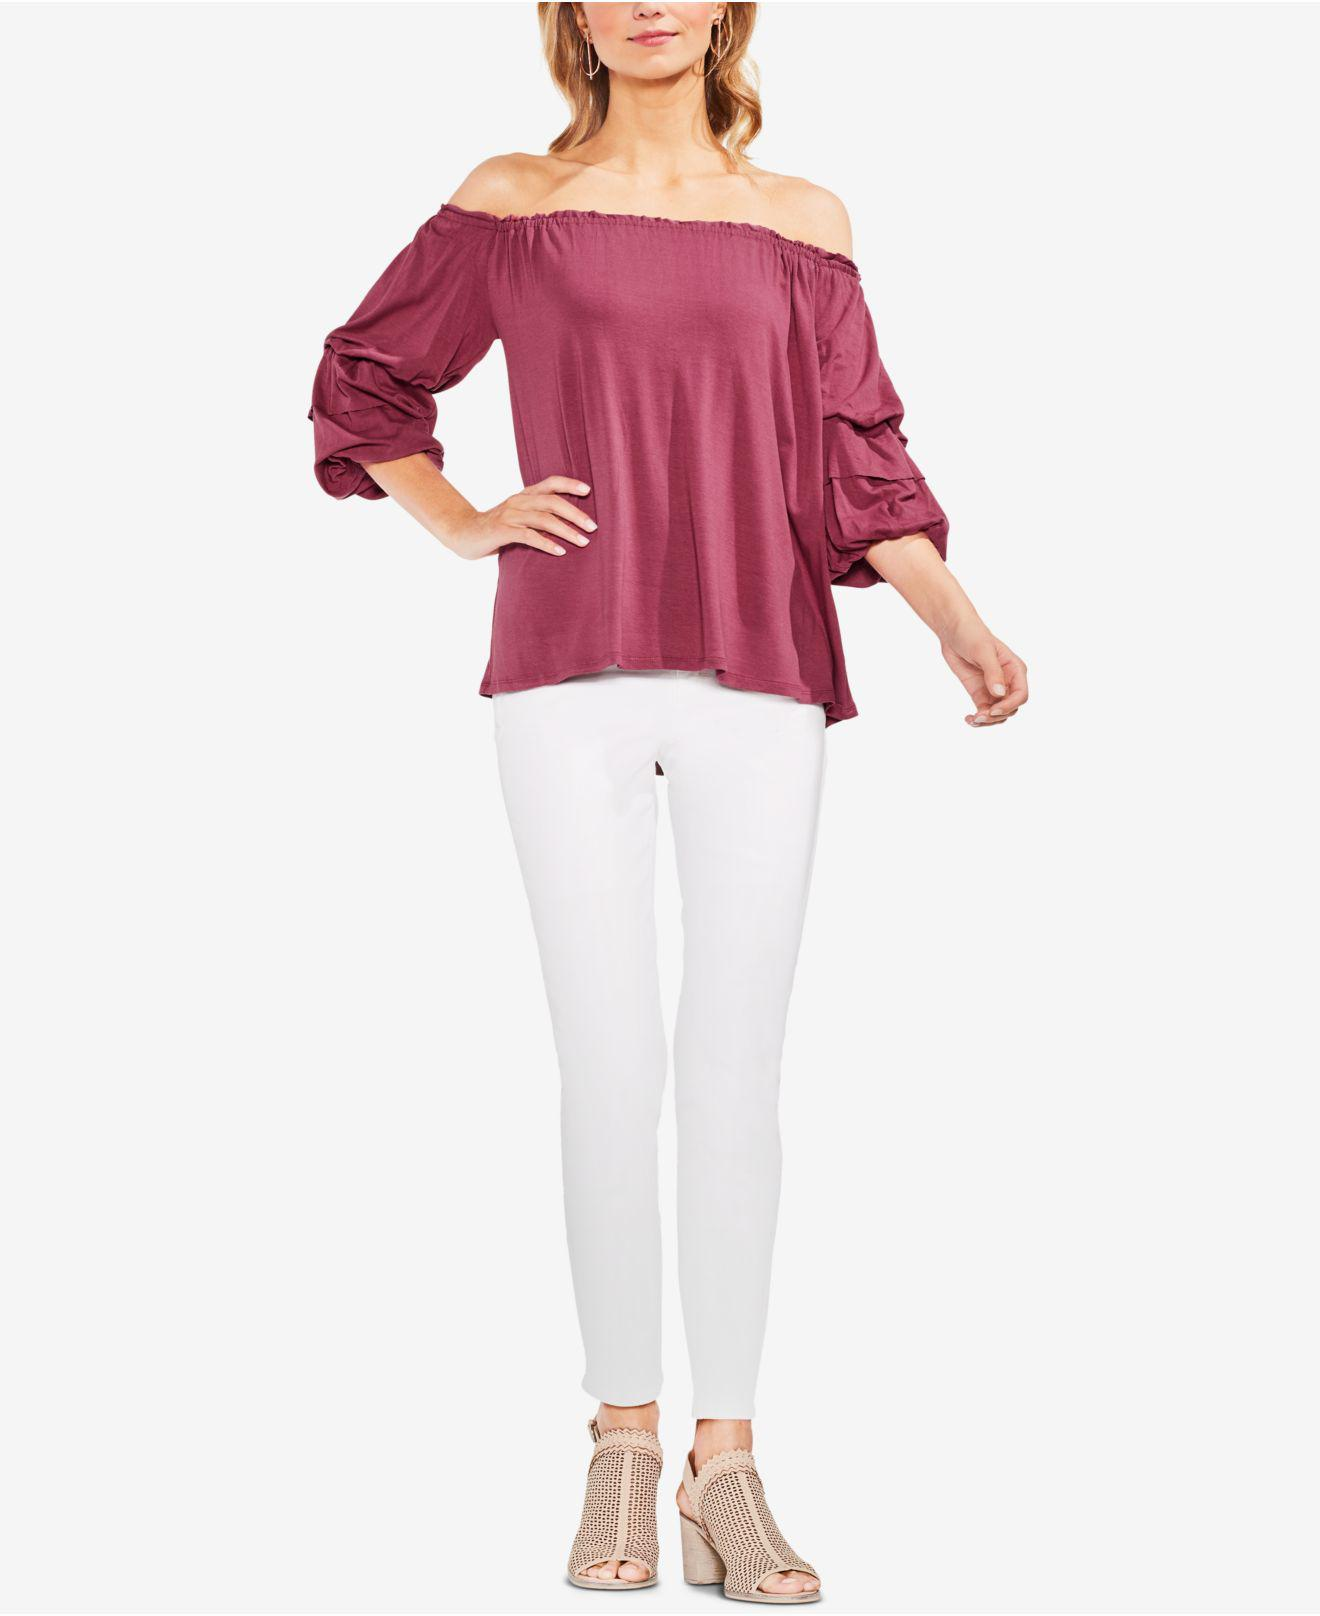 0653a64ff991f Lyst - Vince Camuto Off-the-shoulder Bubble-sleeve Top in Pink